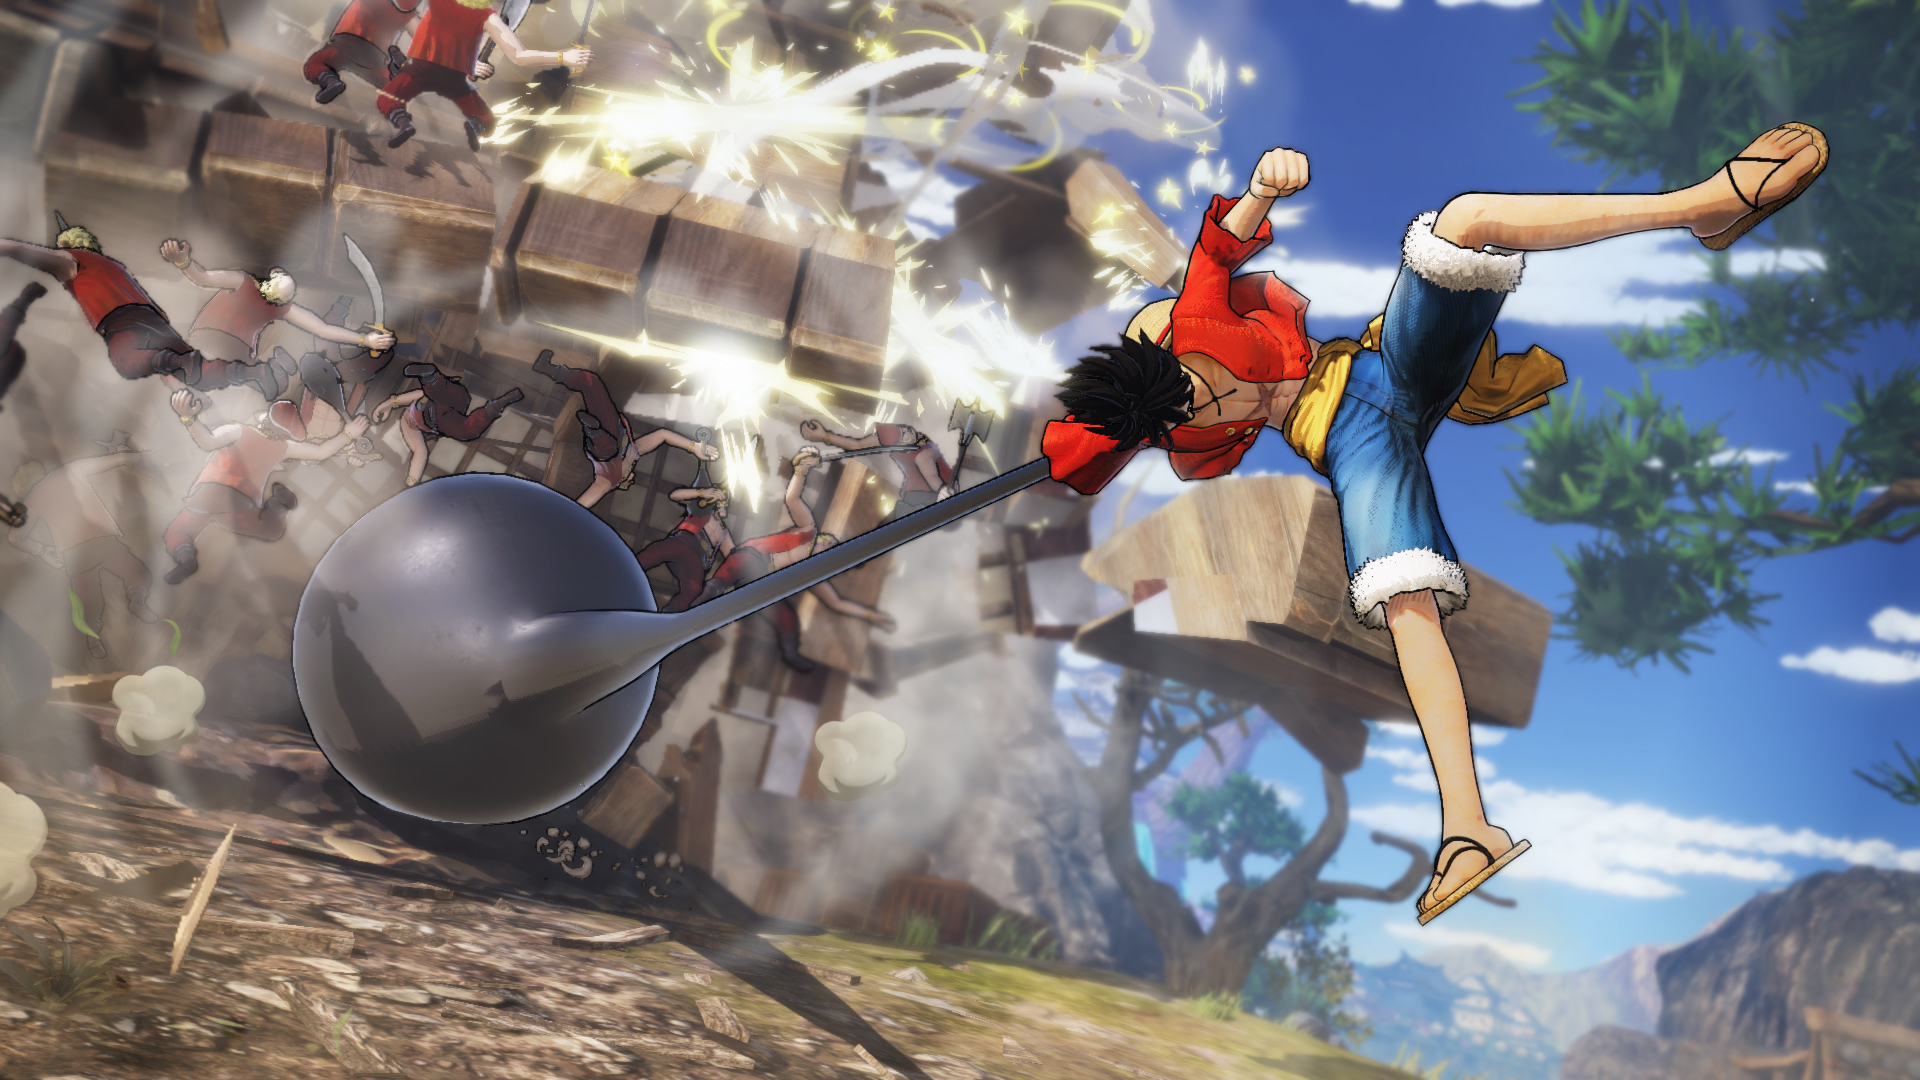 ONE PIECE: PIRATE WARRIORS 4 Deluxe Edition on PS4 ...